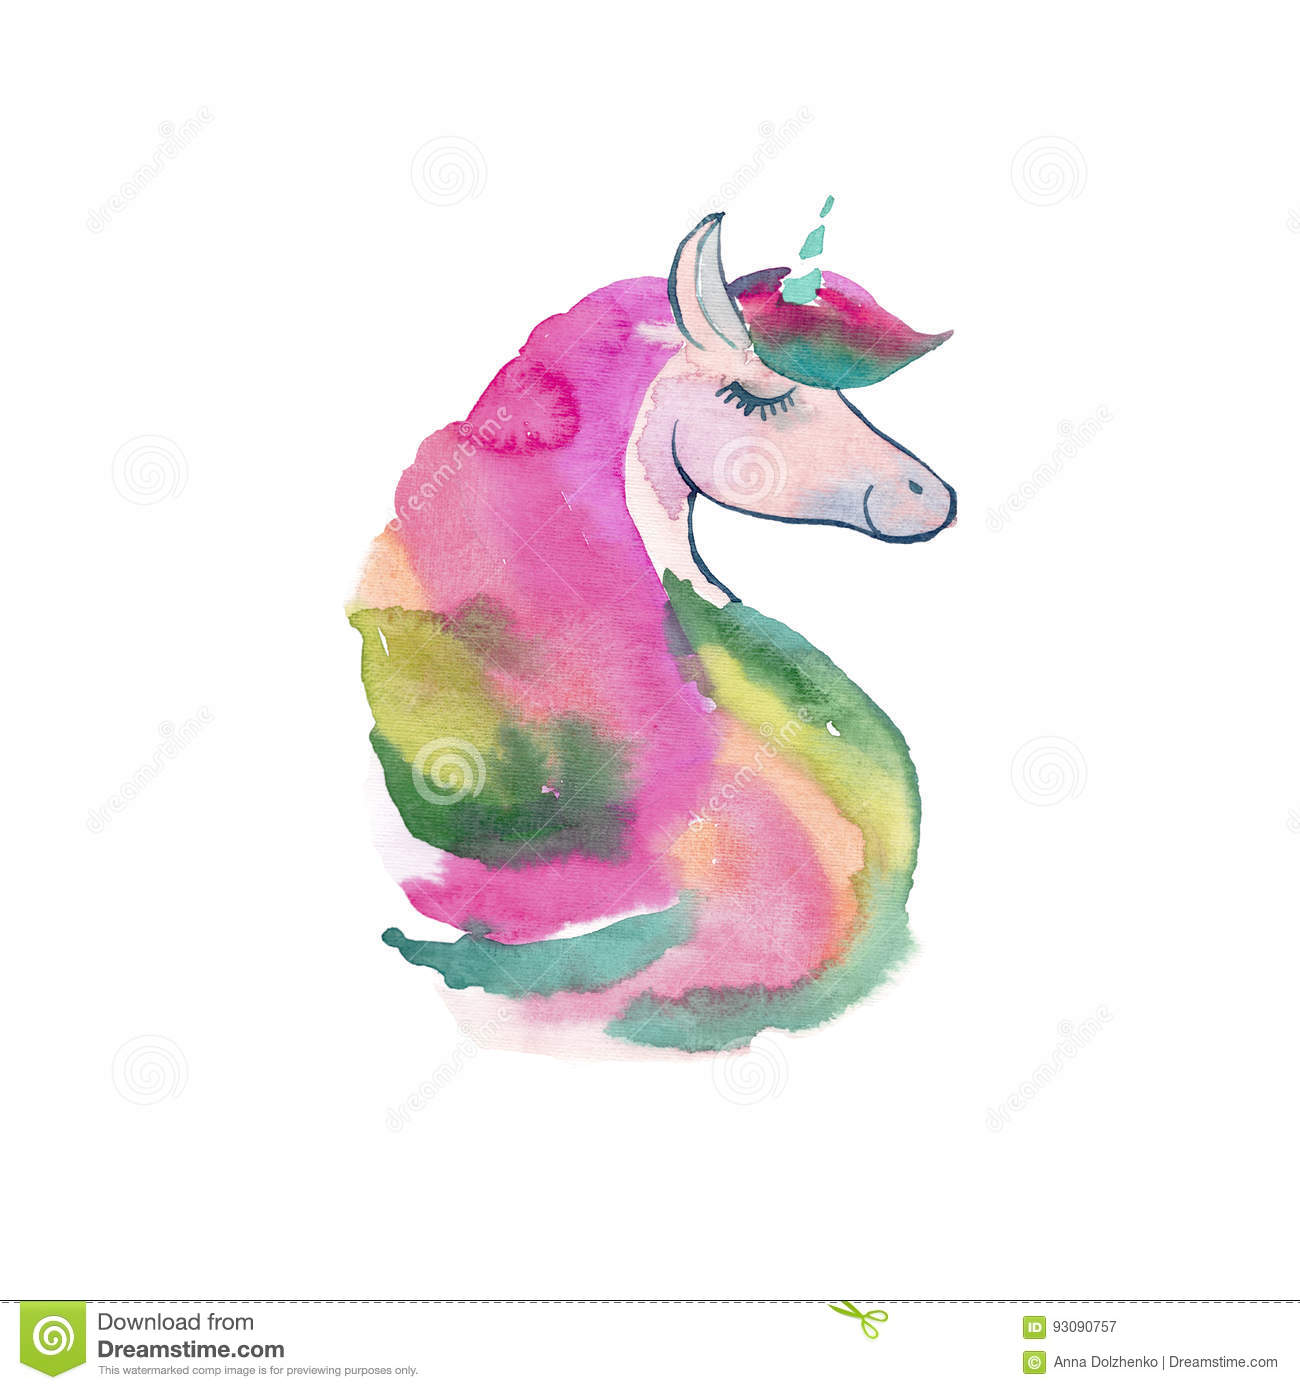 Tender Lovely Cute Fairy Magical Colorful Unicorn With Spring Pastel Beautiful Flowers